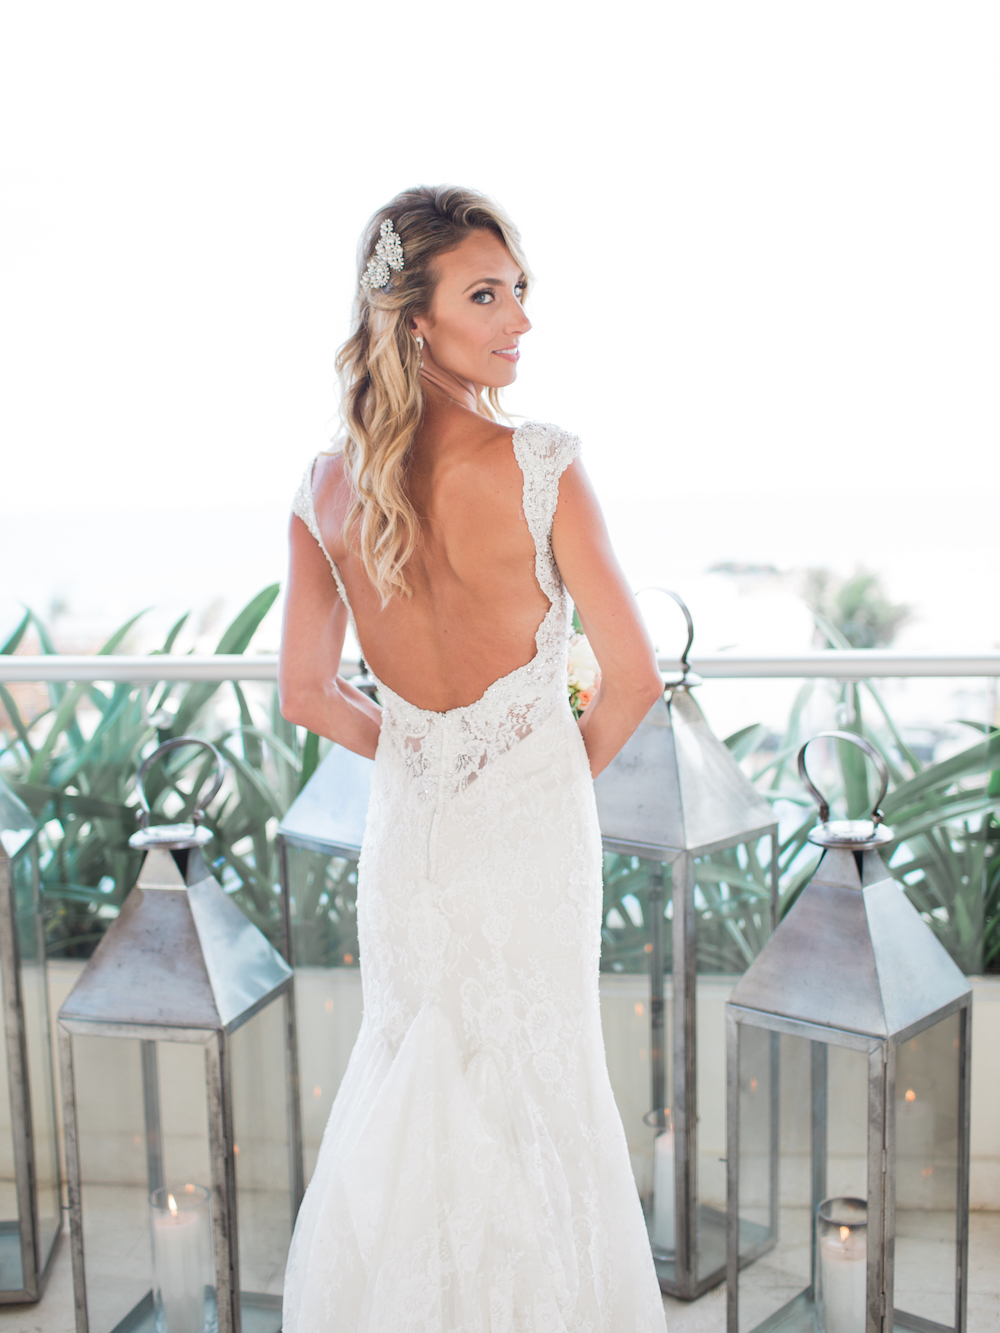 Boho Bridal Fashion Done Right, boho wedding fashion, bohemian bridal fashion